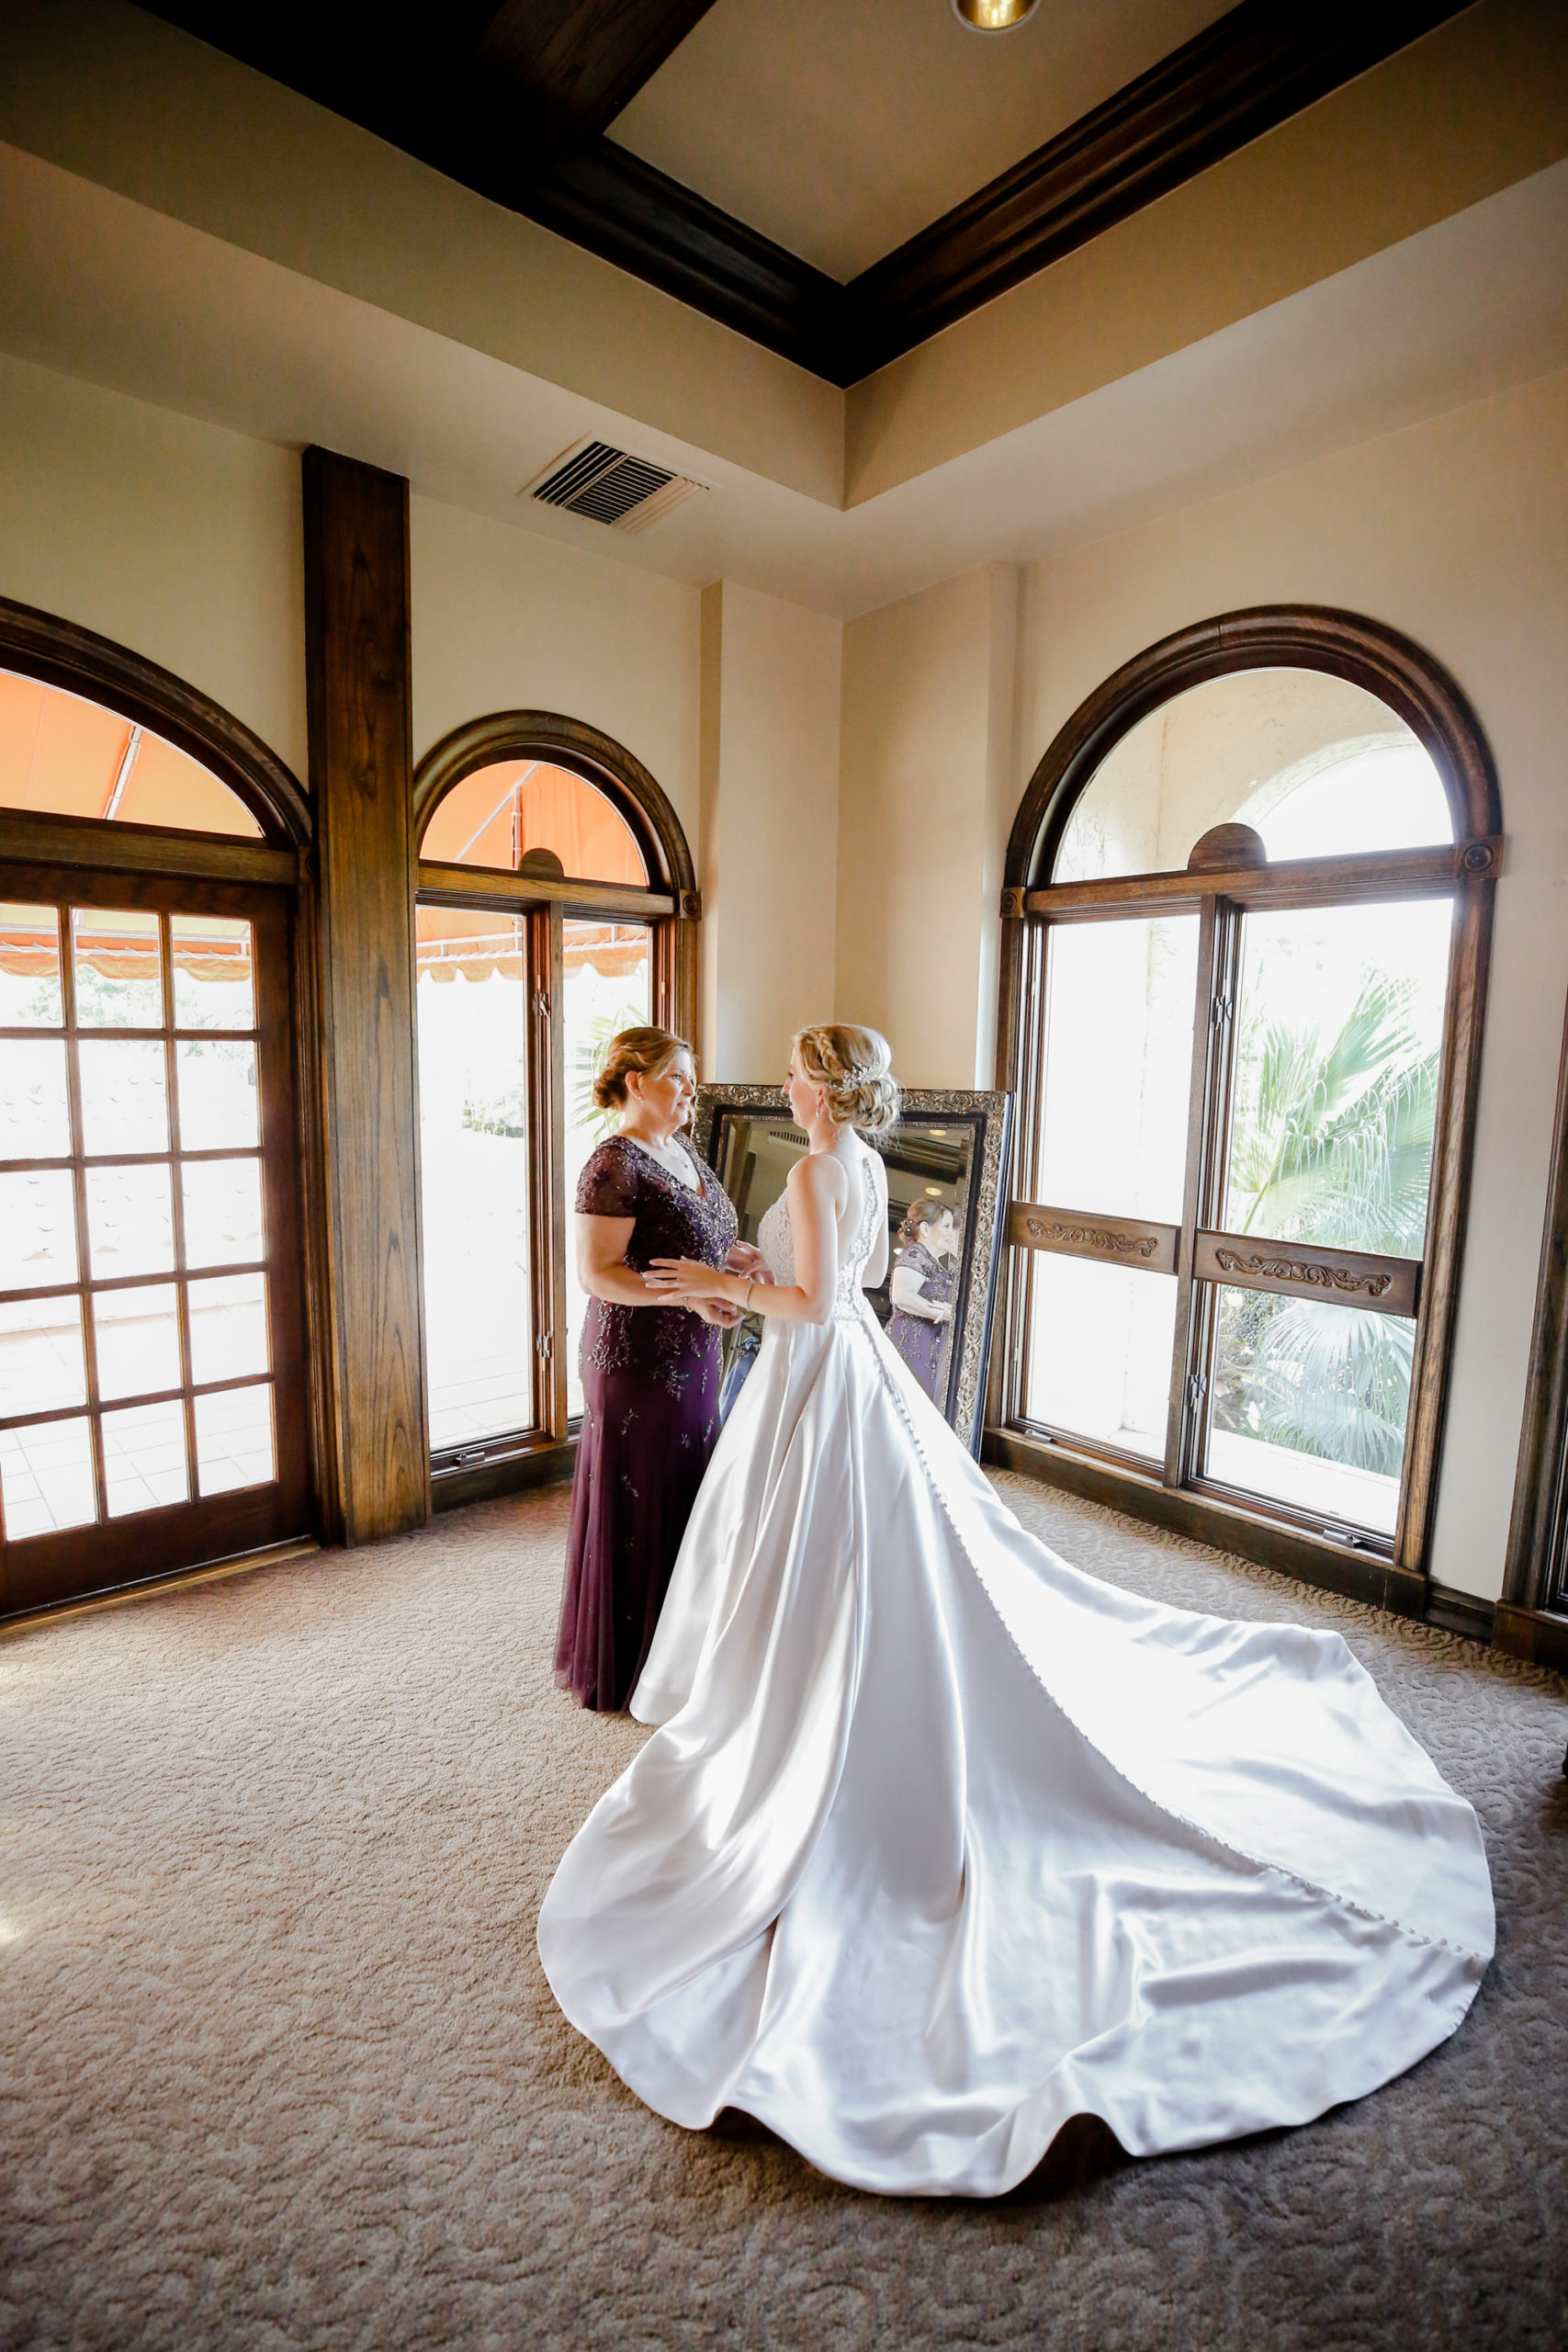 Bride and Mom First Look Wedding Portrait | White Allure Ballgown Wedding Dress with Long Train